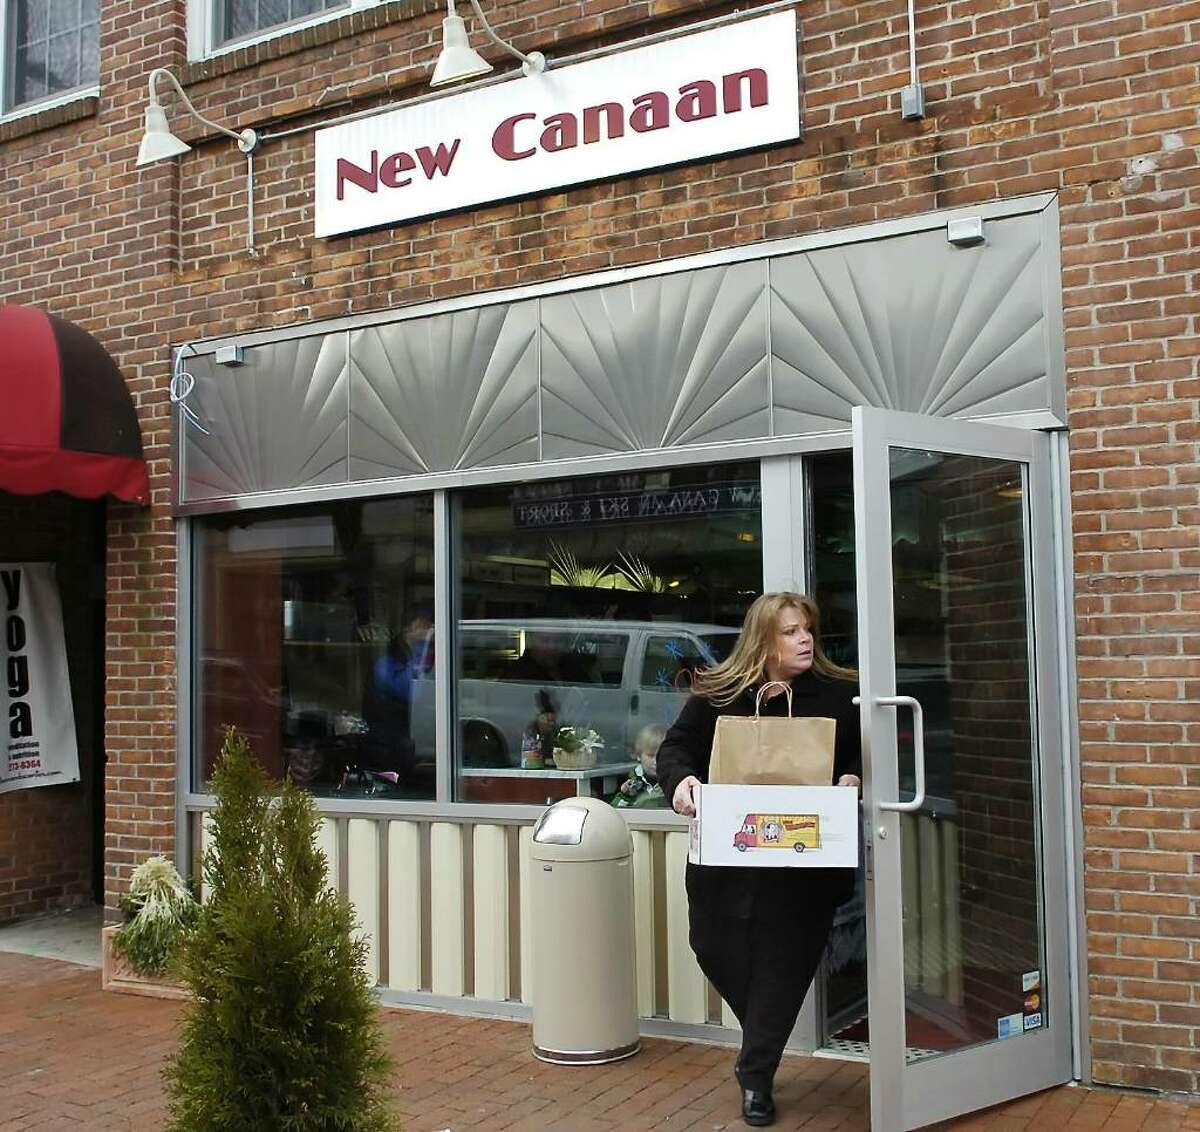 New Canaan Diner in New Canaan